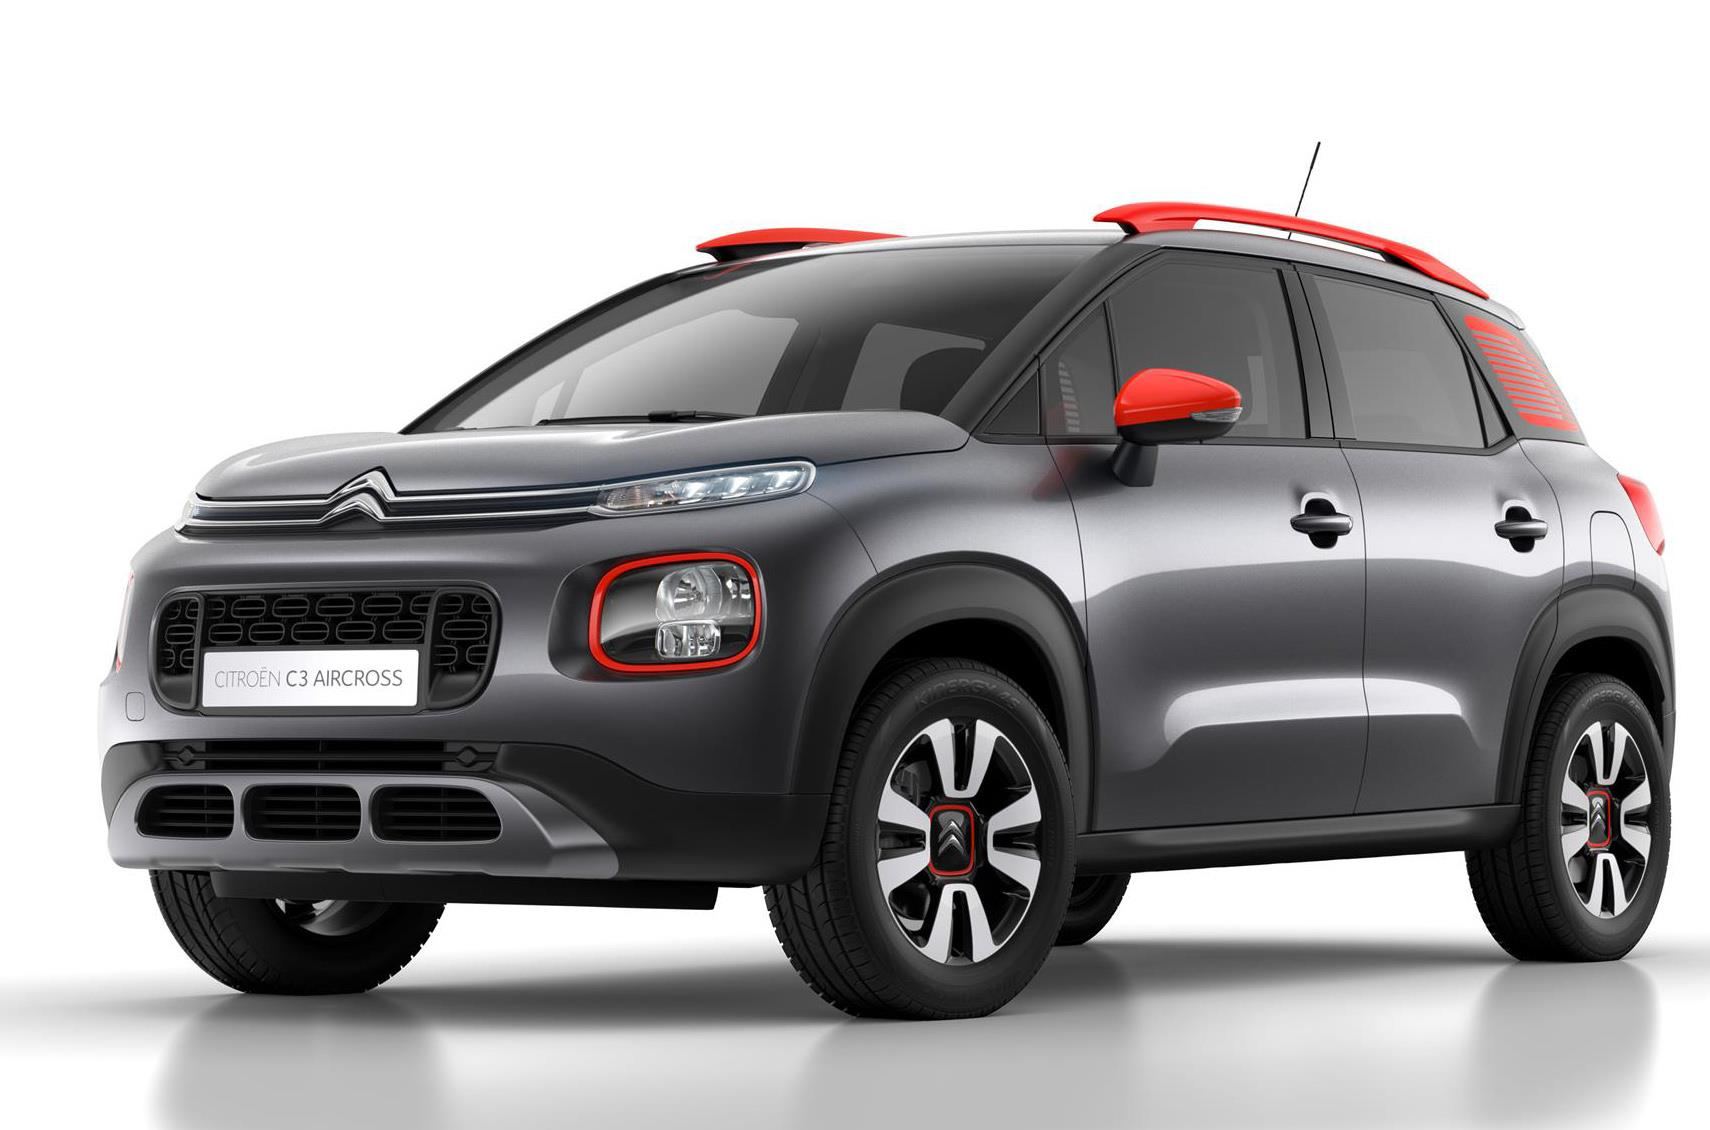 2017 citroen c3 aircross news and information. Black Bedroom Furniture Sets. Home Design Ideas